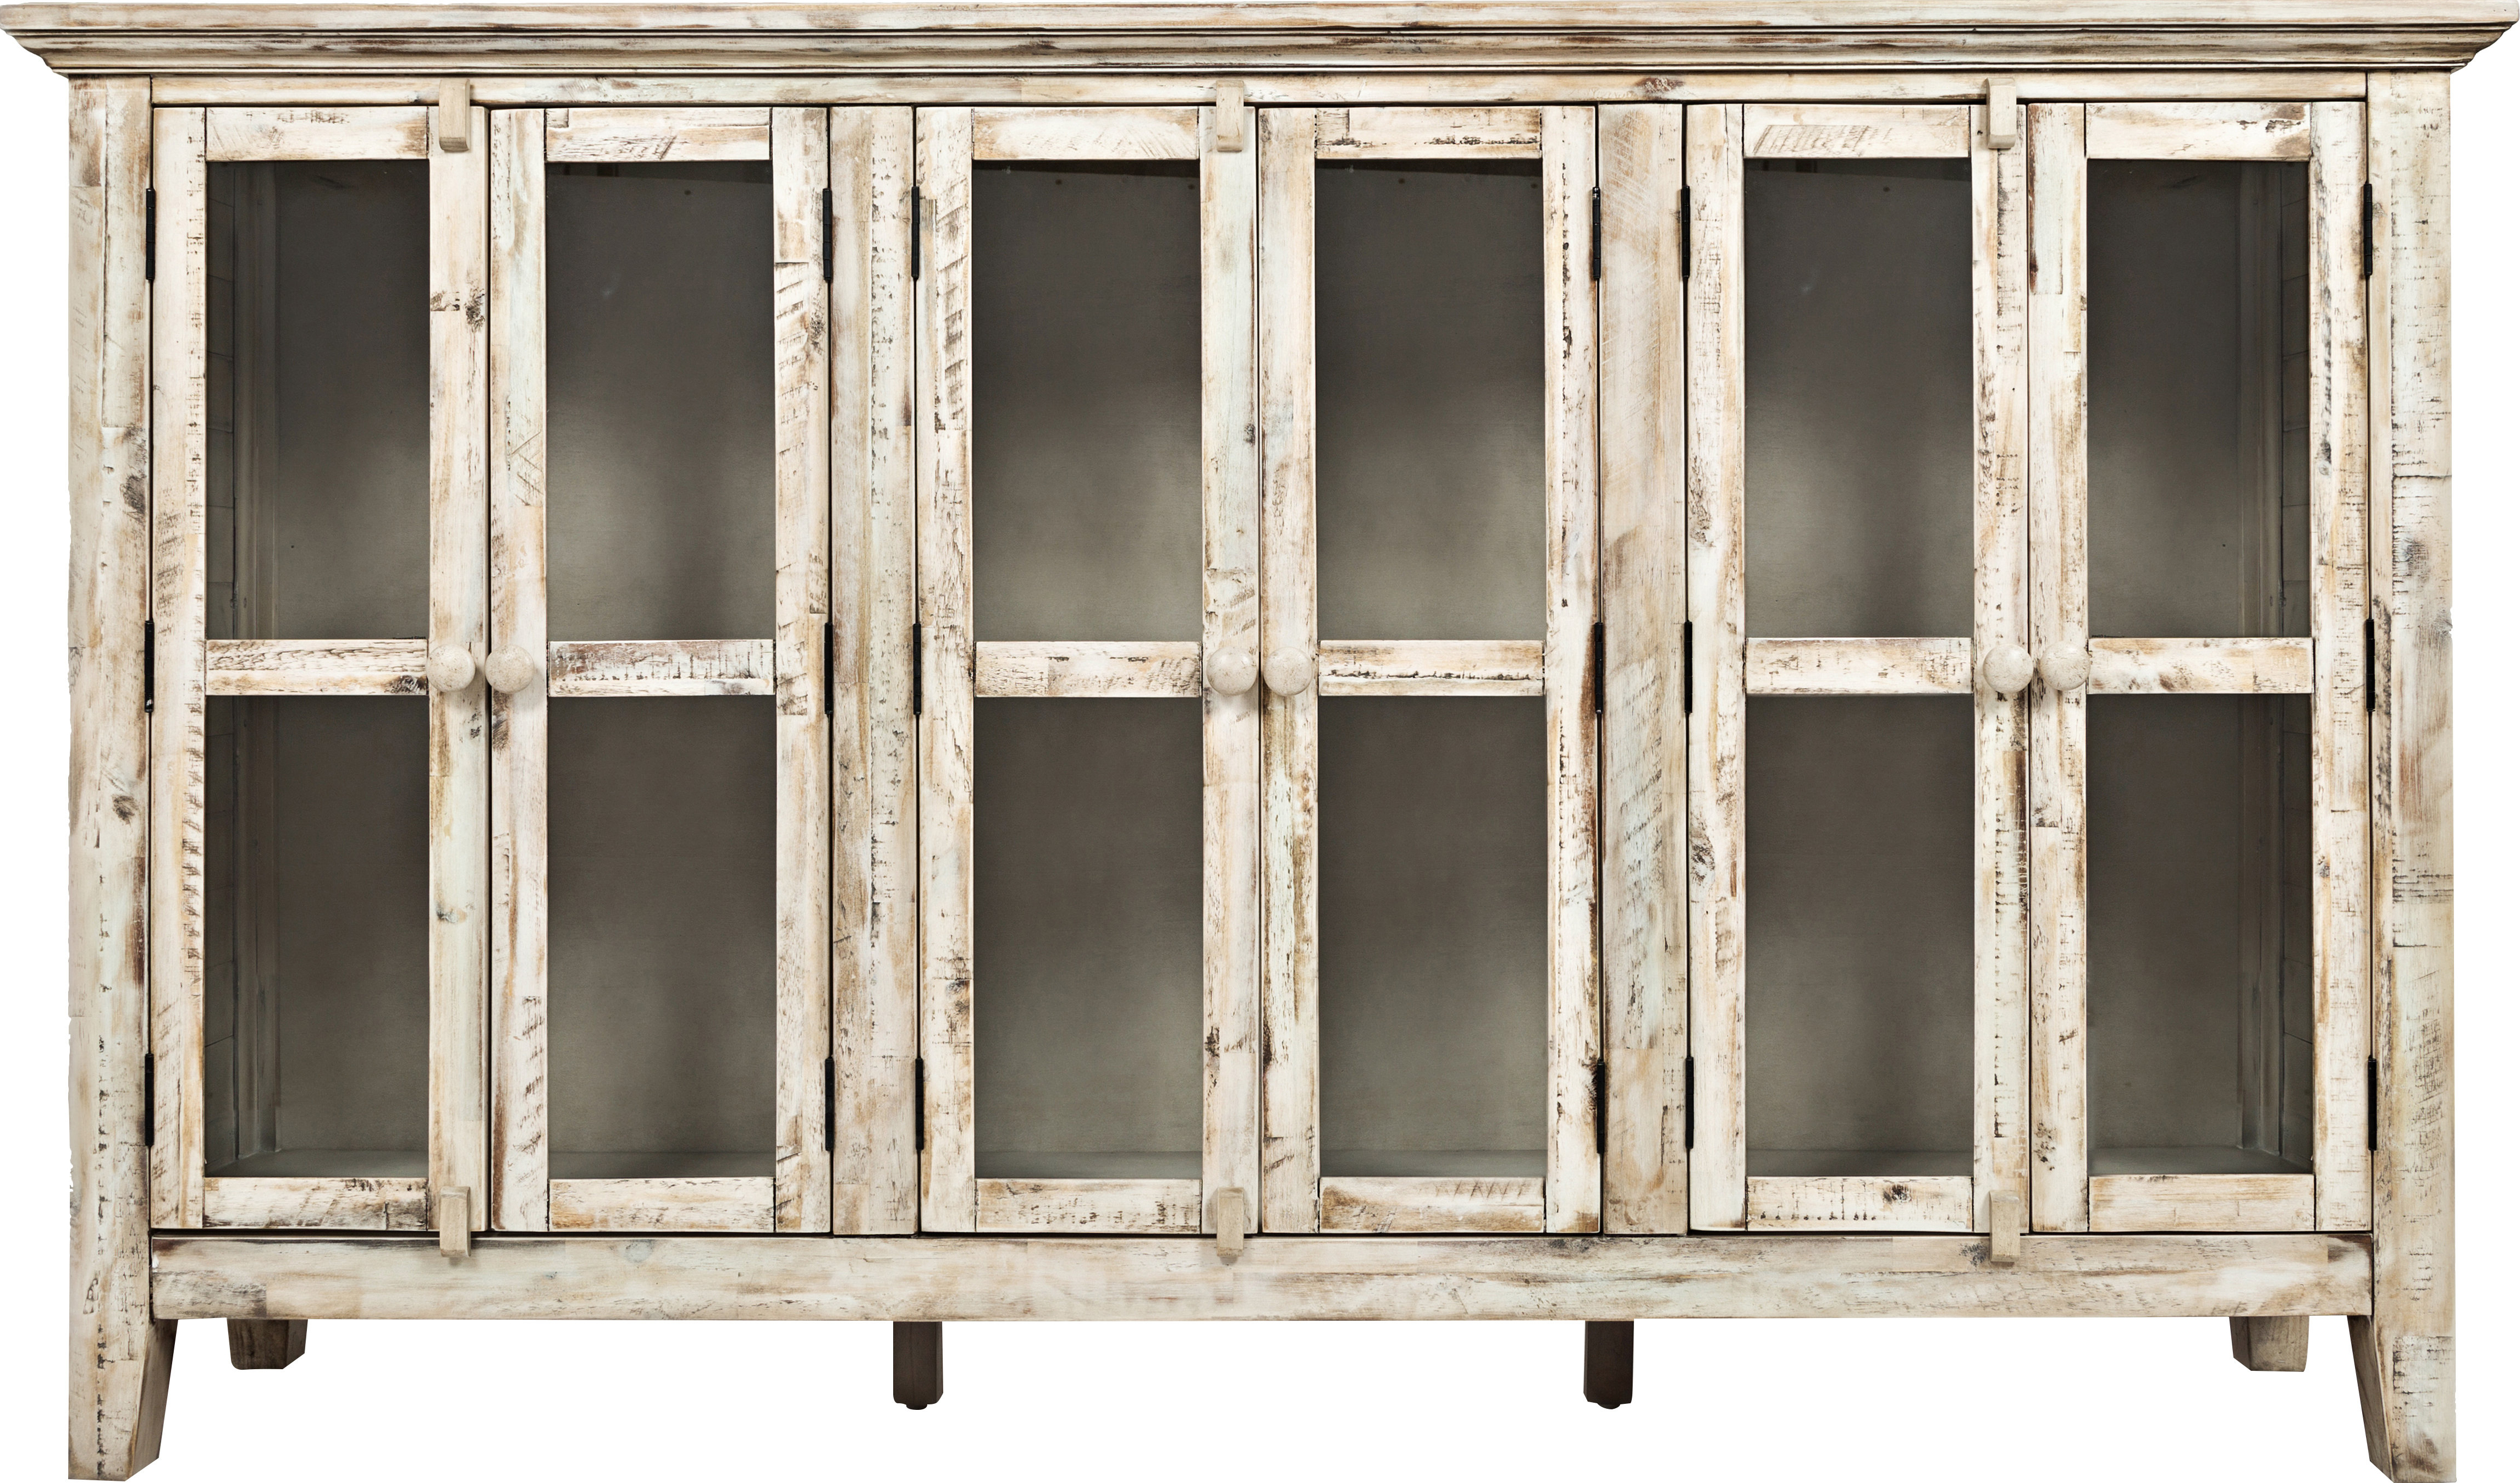 Farmhouse & Rustic Sideboards & Buffets | Birch Lane Throughout Chicoree Charlena Sideboards (View 19 of 20)